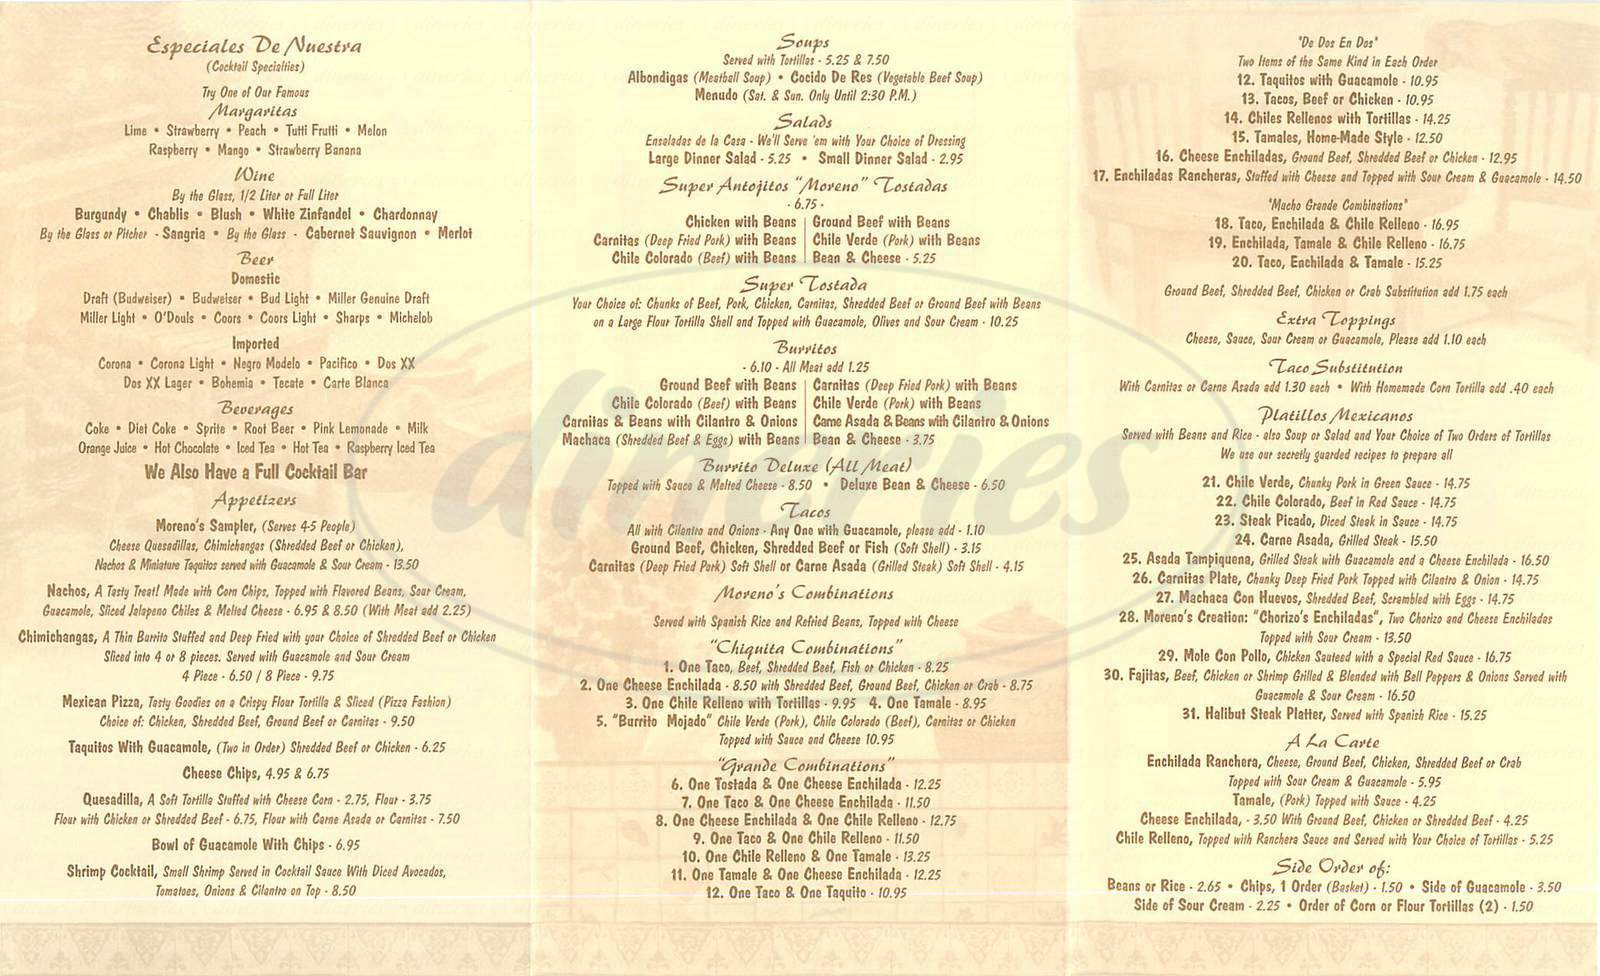 menu for Moreno's Restaurant